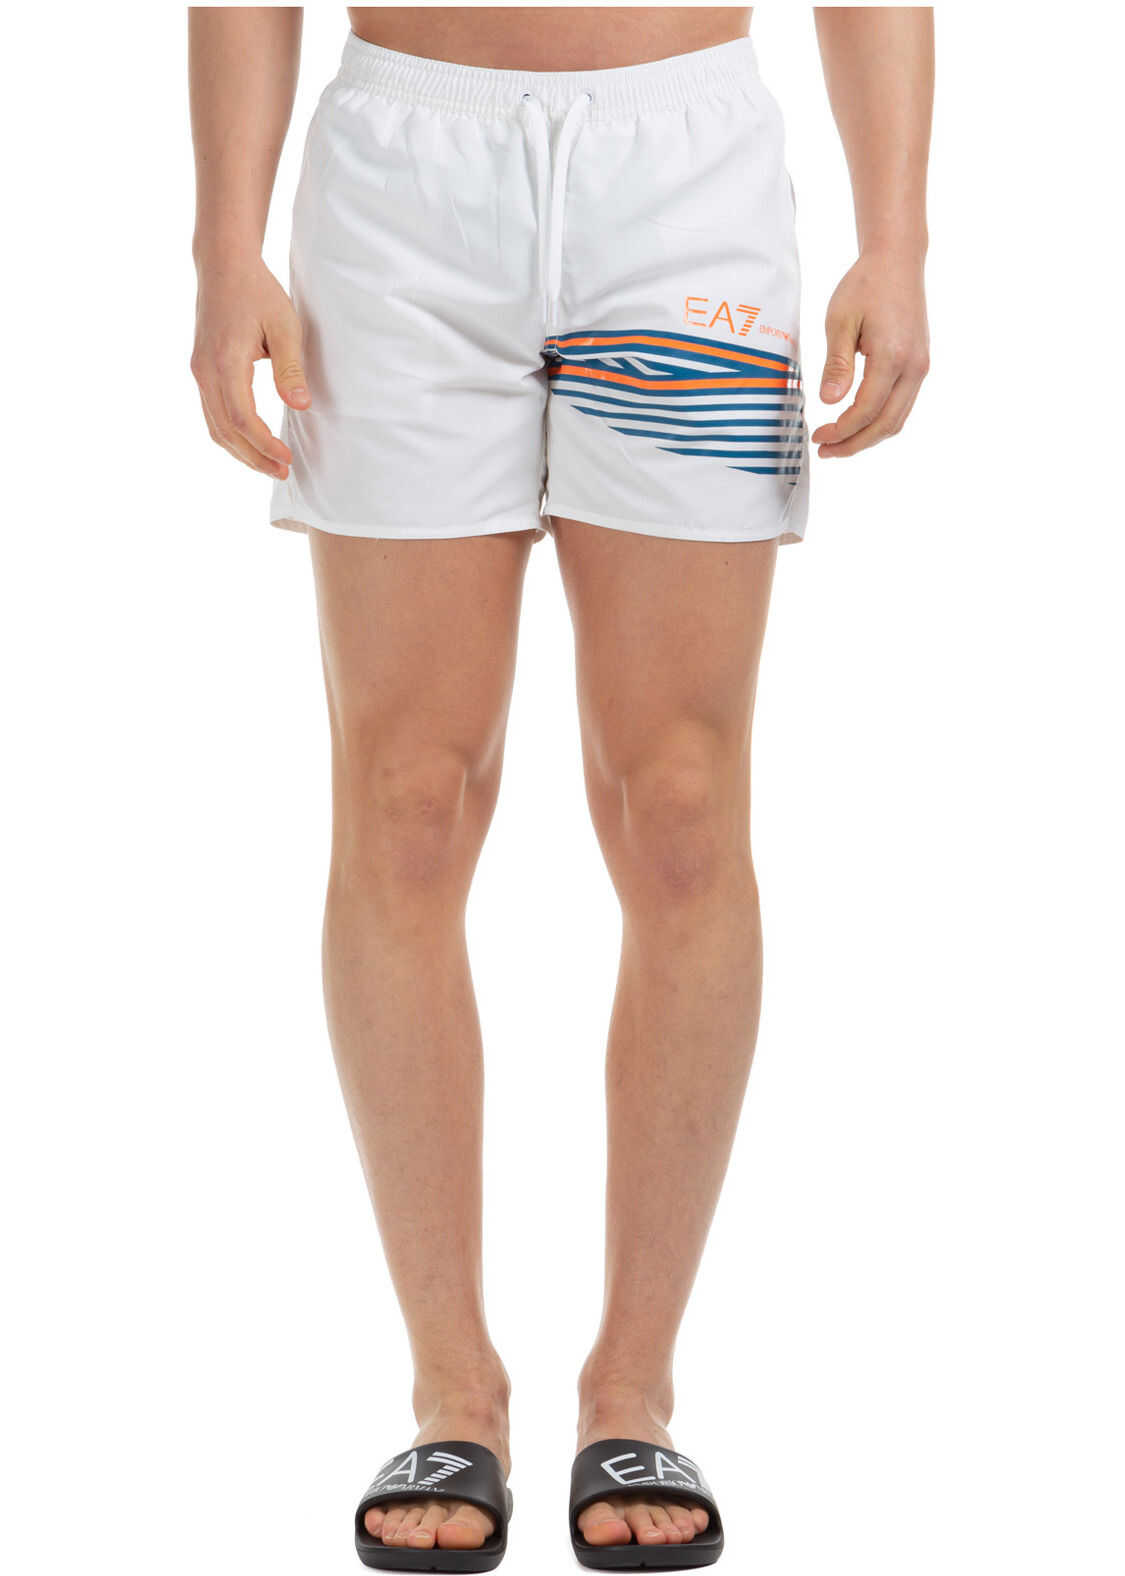 EA7 Swimming Suit White